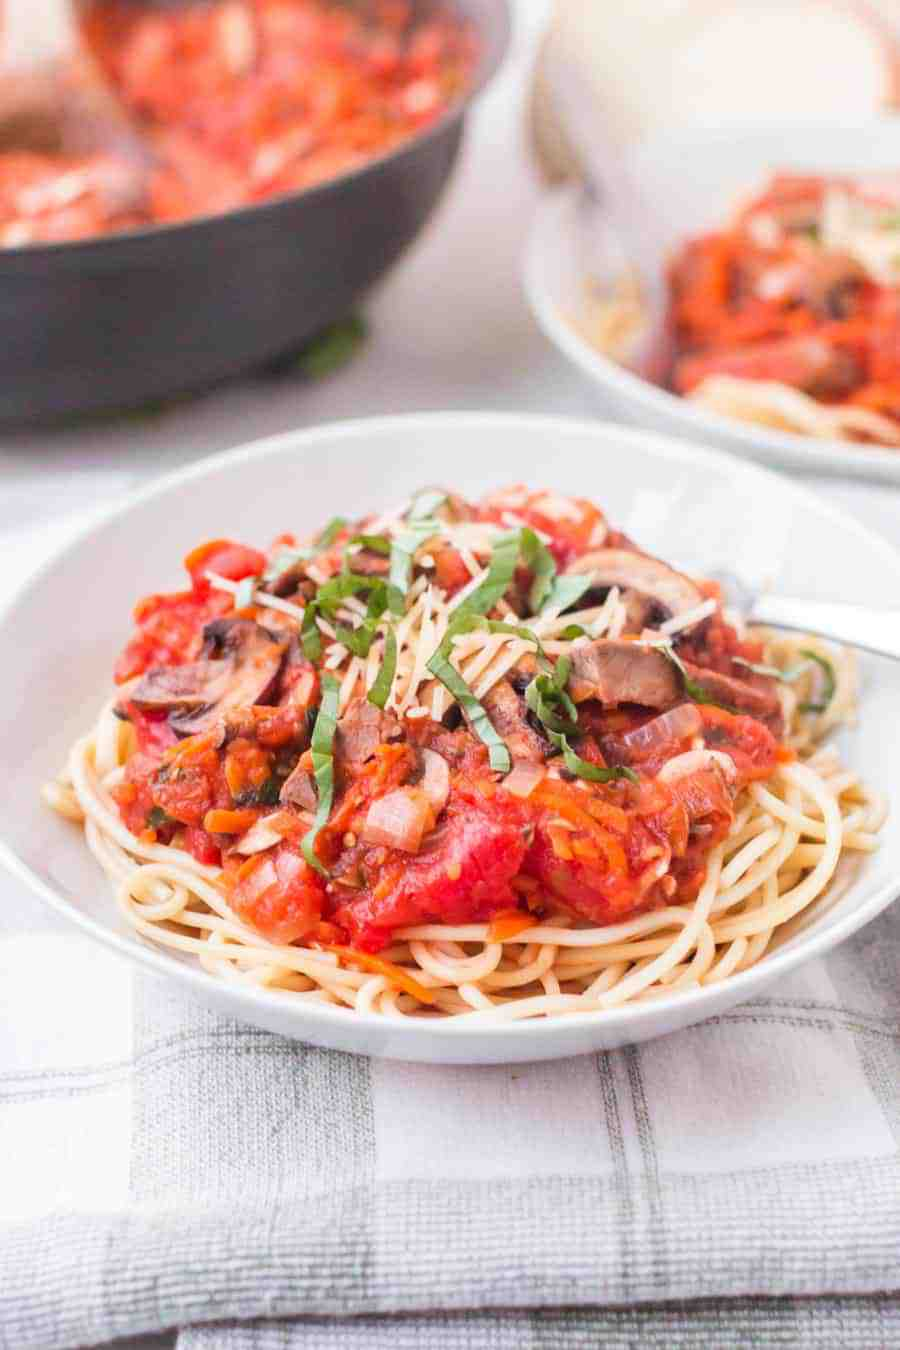 Steak and mushroom marinara is a hearty and rich pasta dish that's packed with bites of yummy steak, mushrooms, celery, carrots, onion, tomatoes, and decadent herbs. #pasta #marinara #steak #mushrooms #marinarapasta